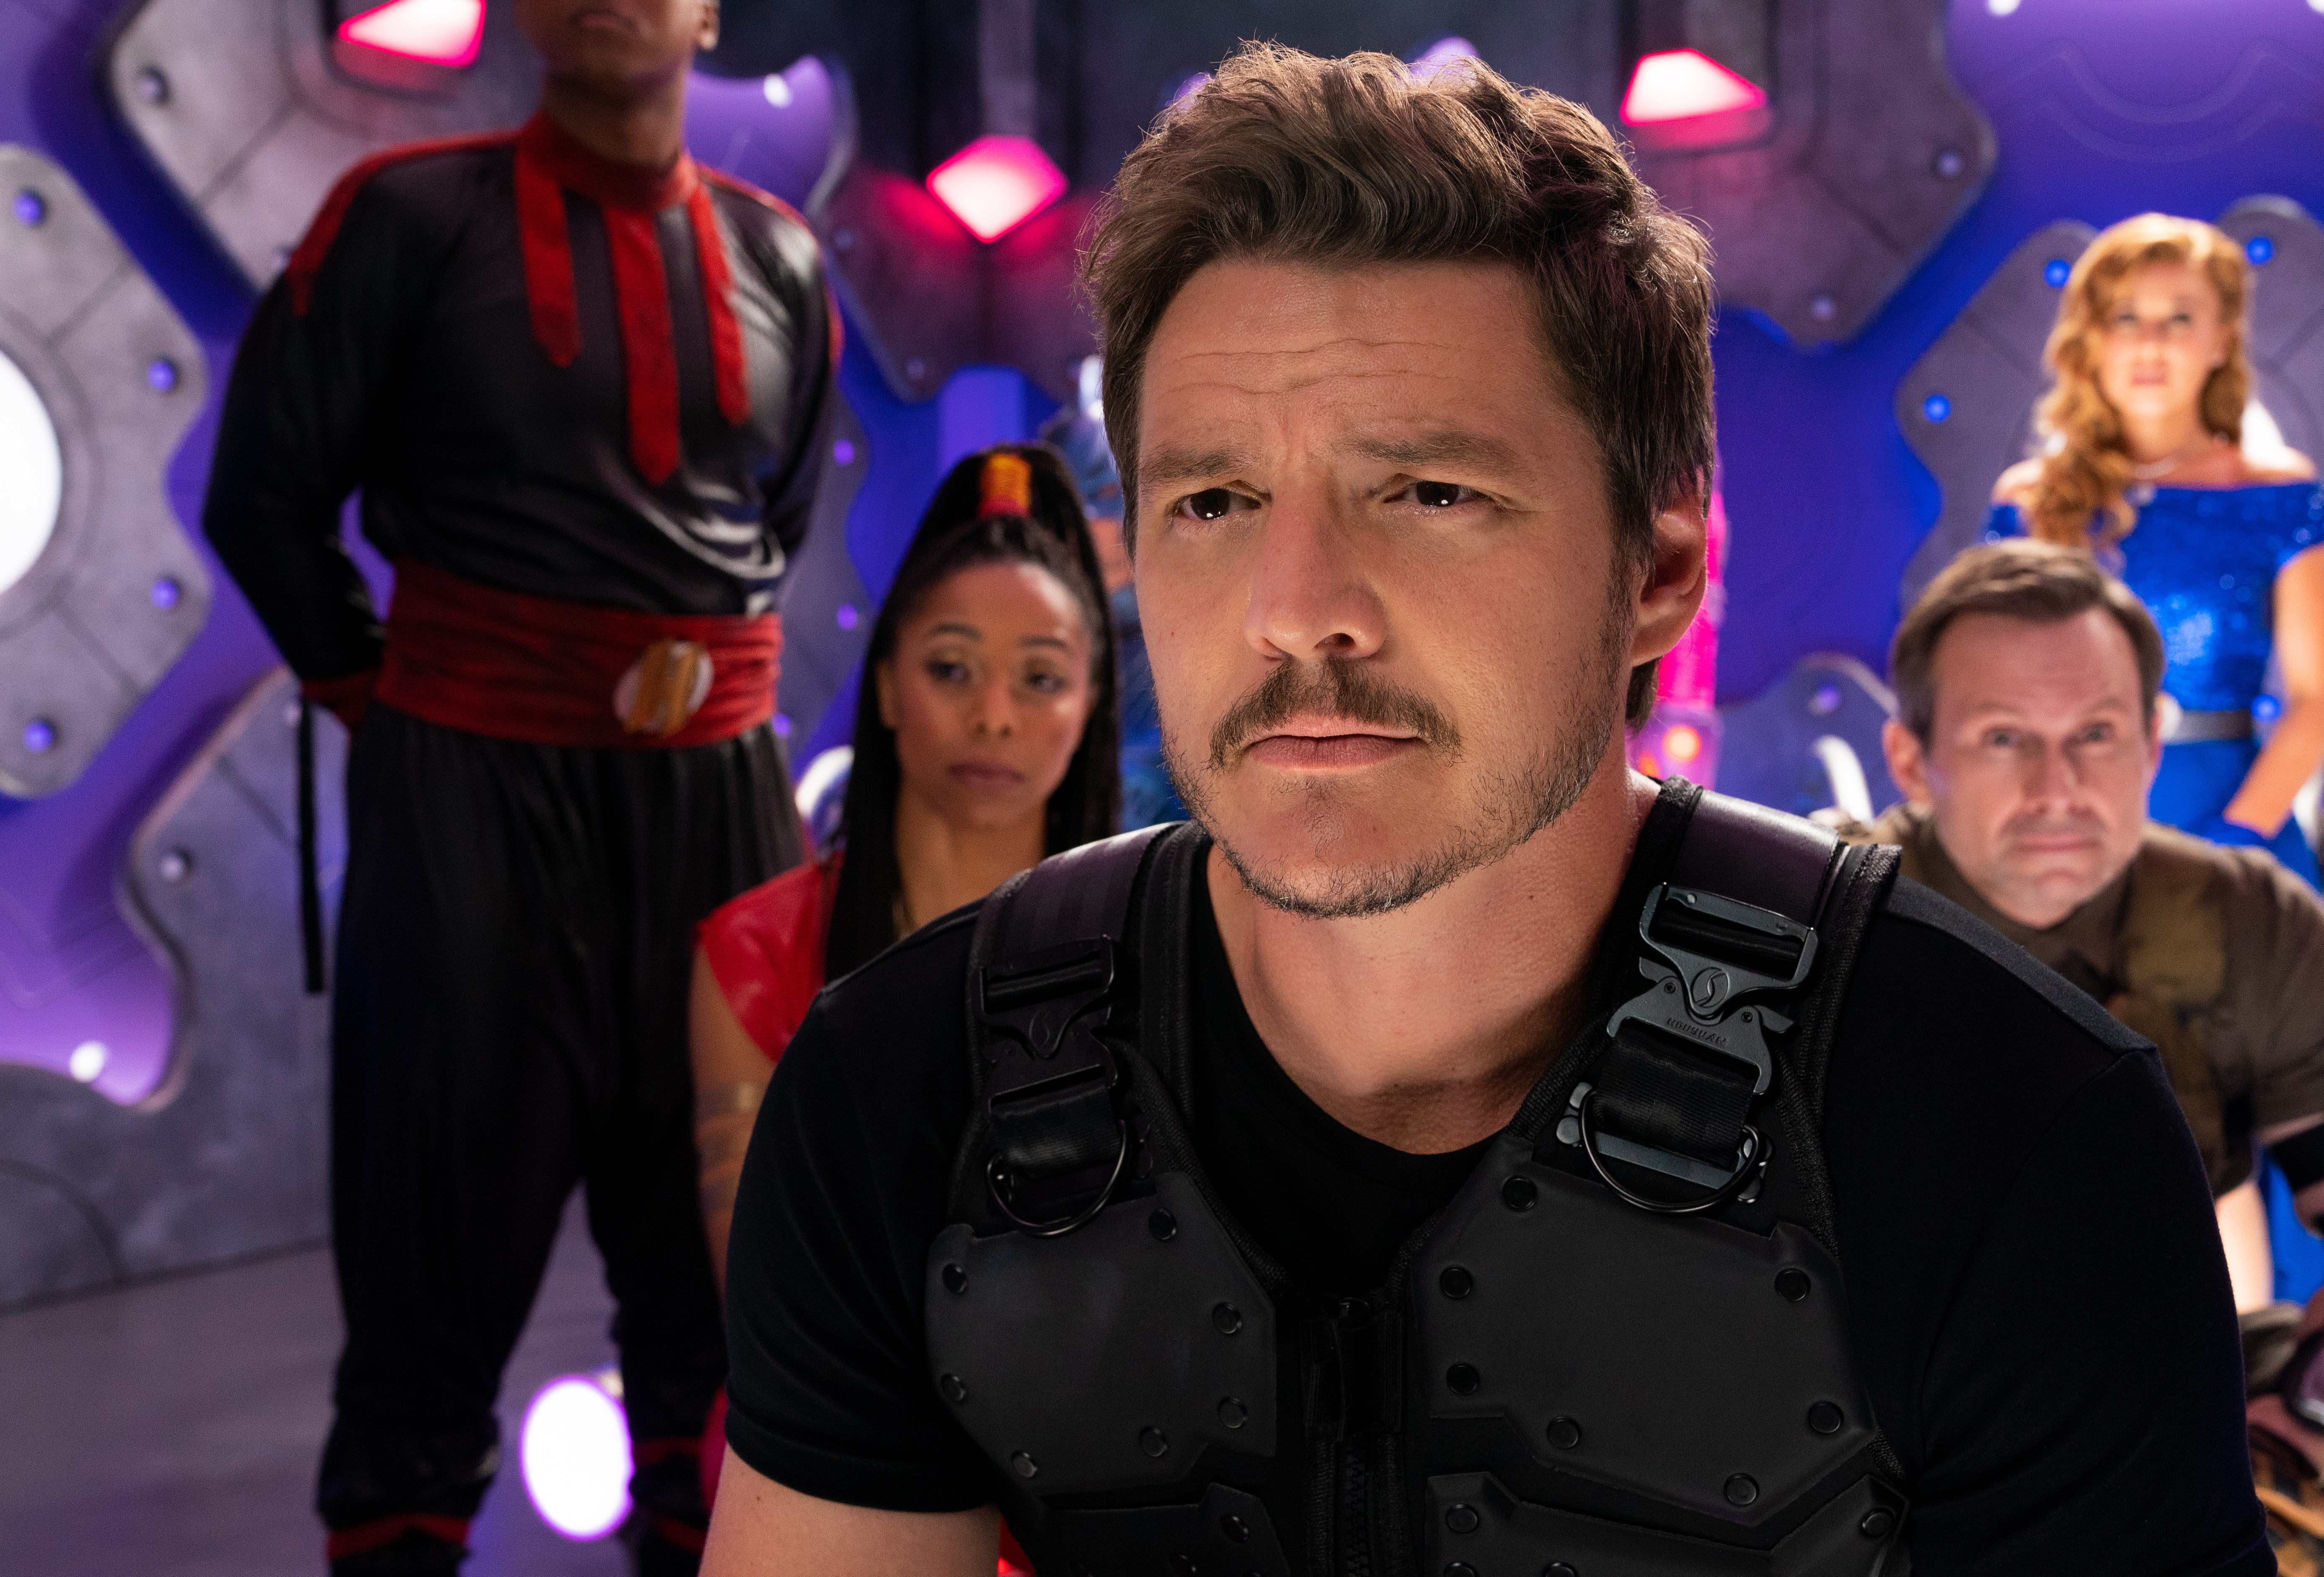 Quinton Johnson as Crimson Legend, Brittany Perry-Russell as Red Lightening Fury, Pedro Pascal as Marcus Moreno, Christian Slater as Tech-No, Haley Reinhart as Ms. Vox.